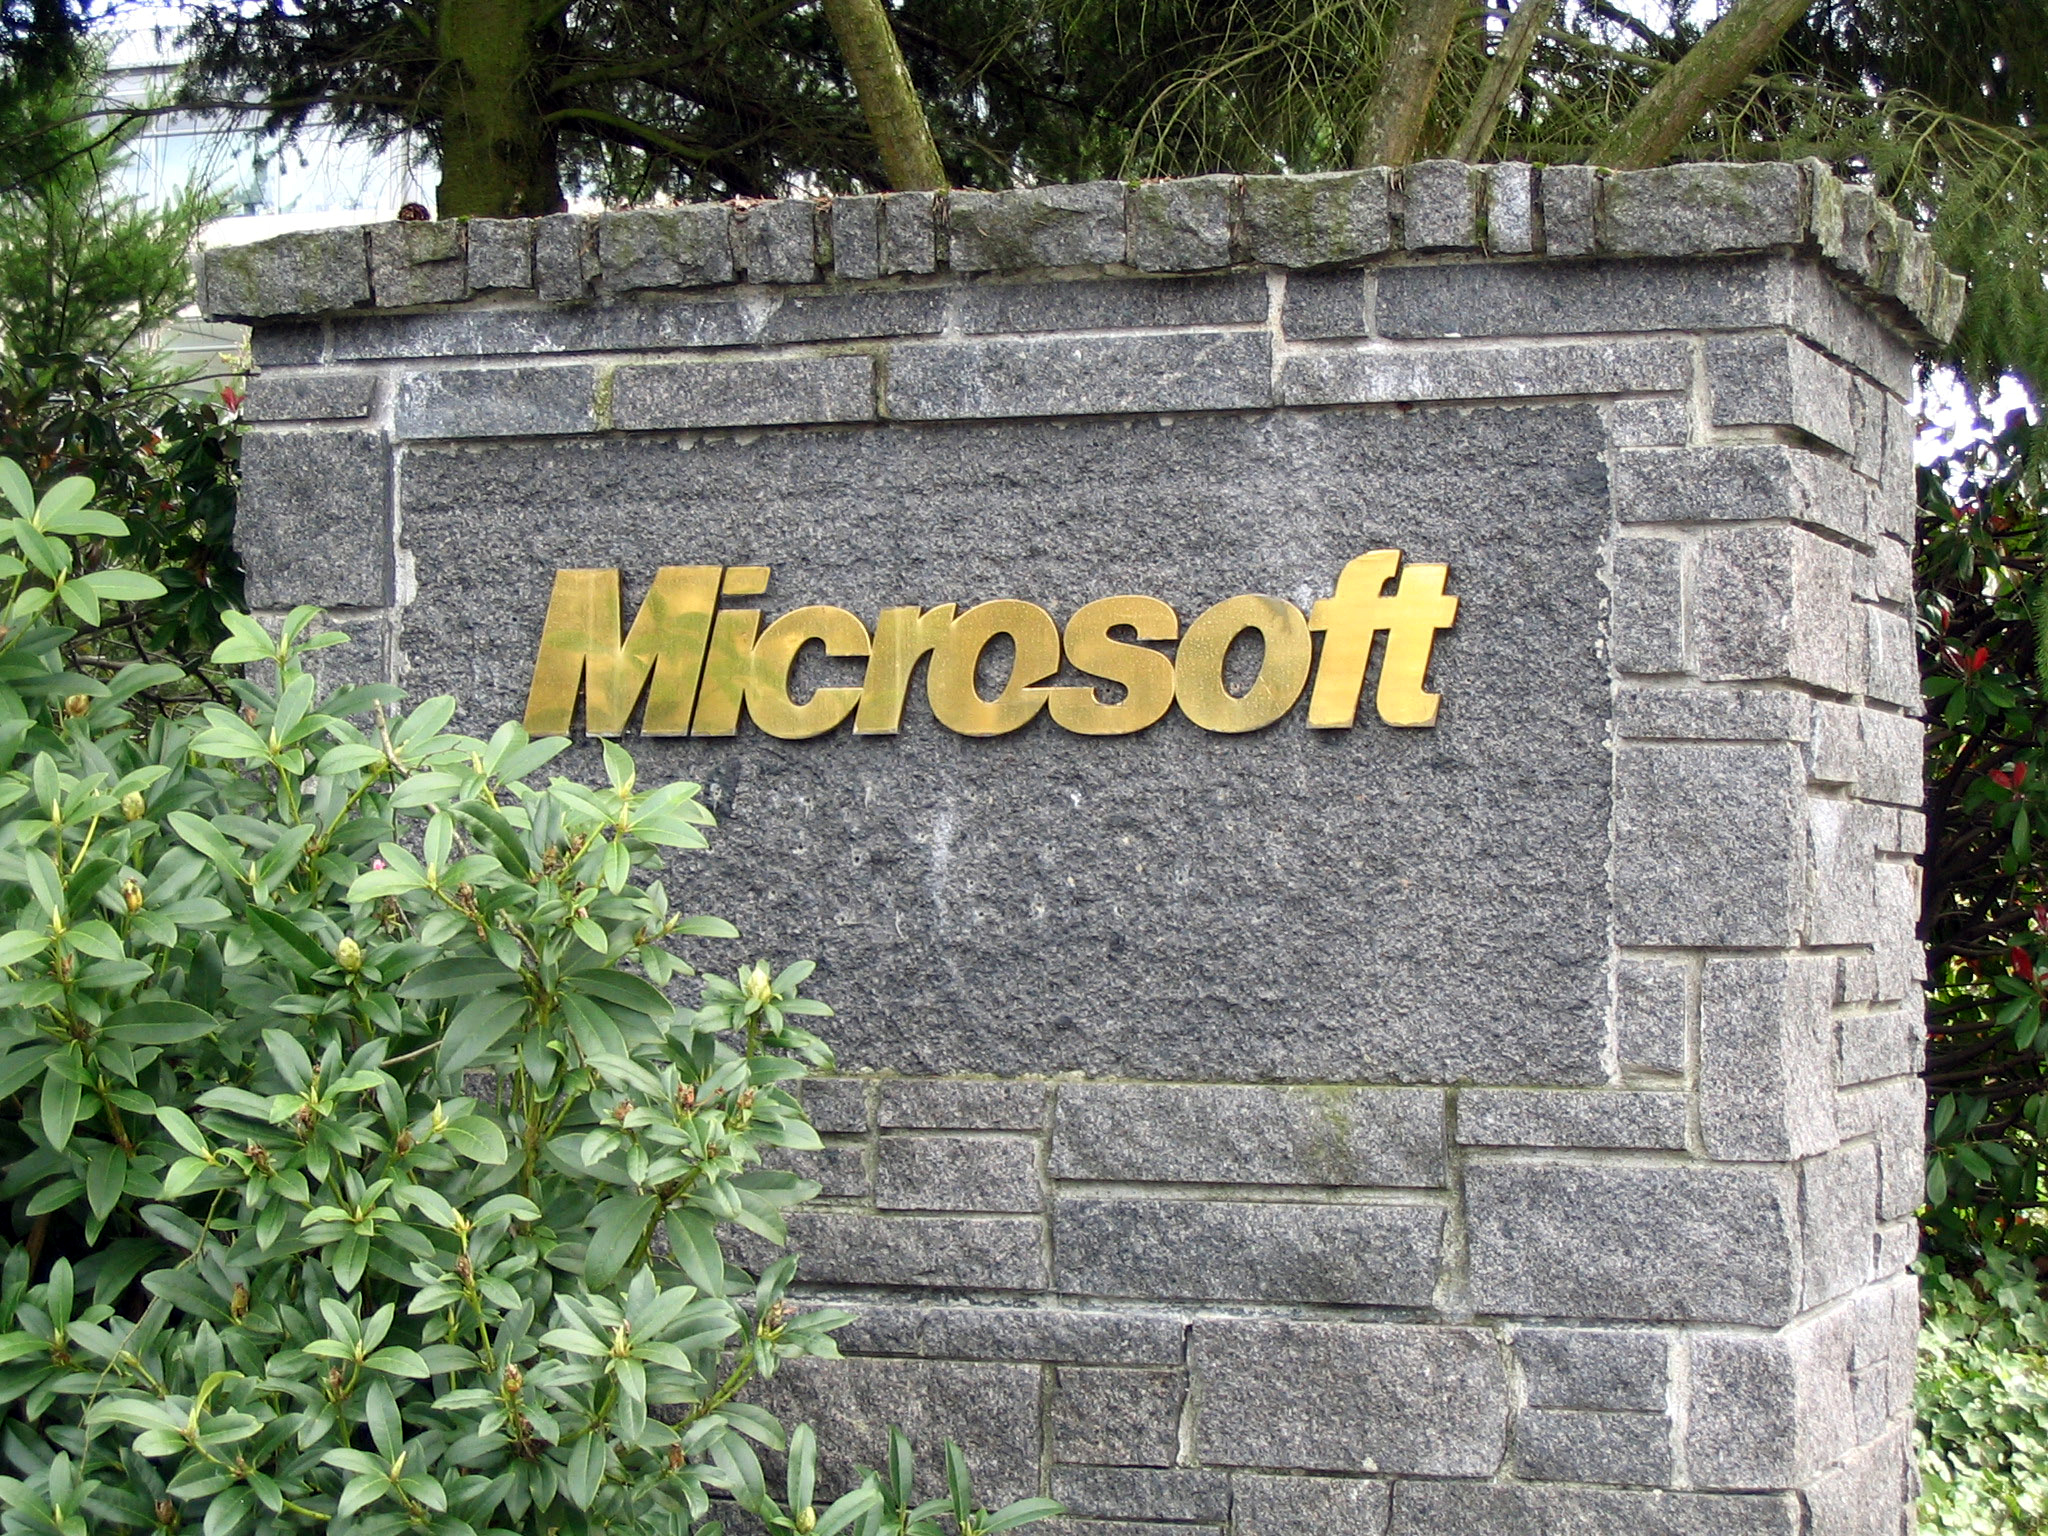 https://i0.wp.com/upload.wikimedia.org/wikipedia/commons/2/27/Microsoft_sign_closeup.jpg